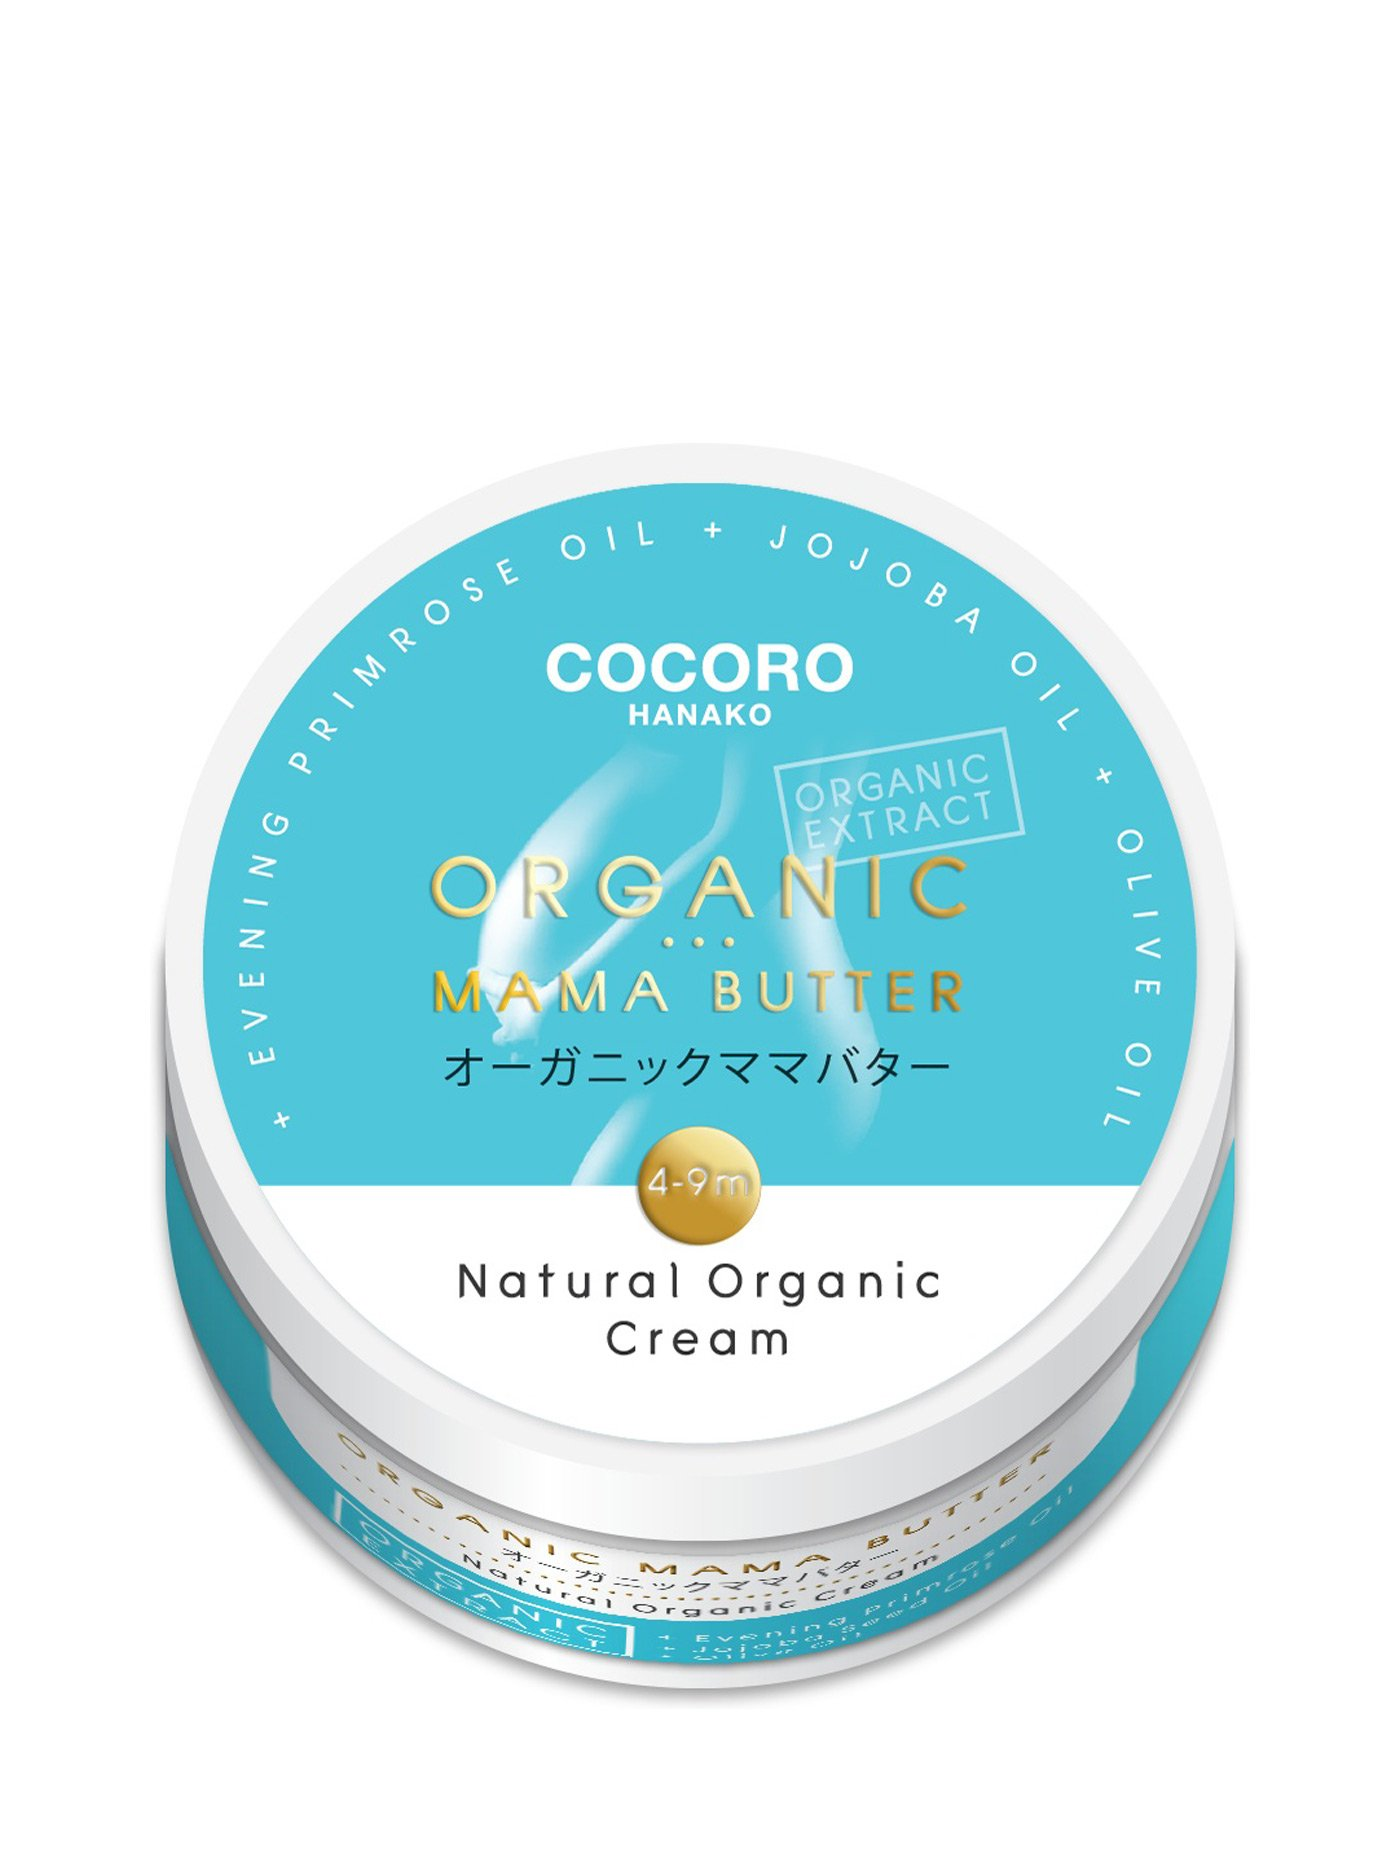 Cocoro Hanako Natural Organic Mama Butter Cream125g Highly recommended for 4-9 months pregnant women